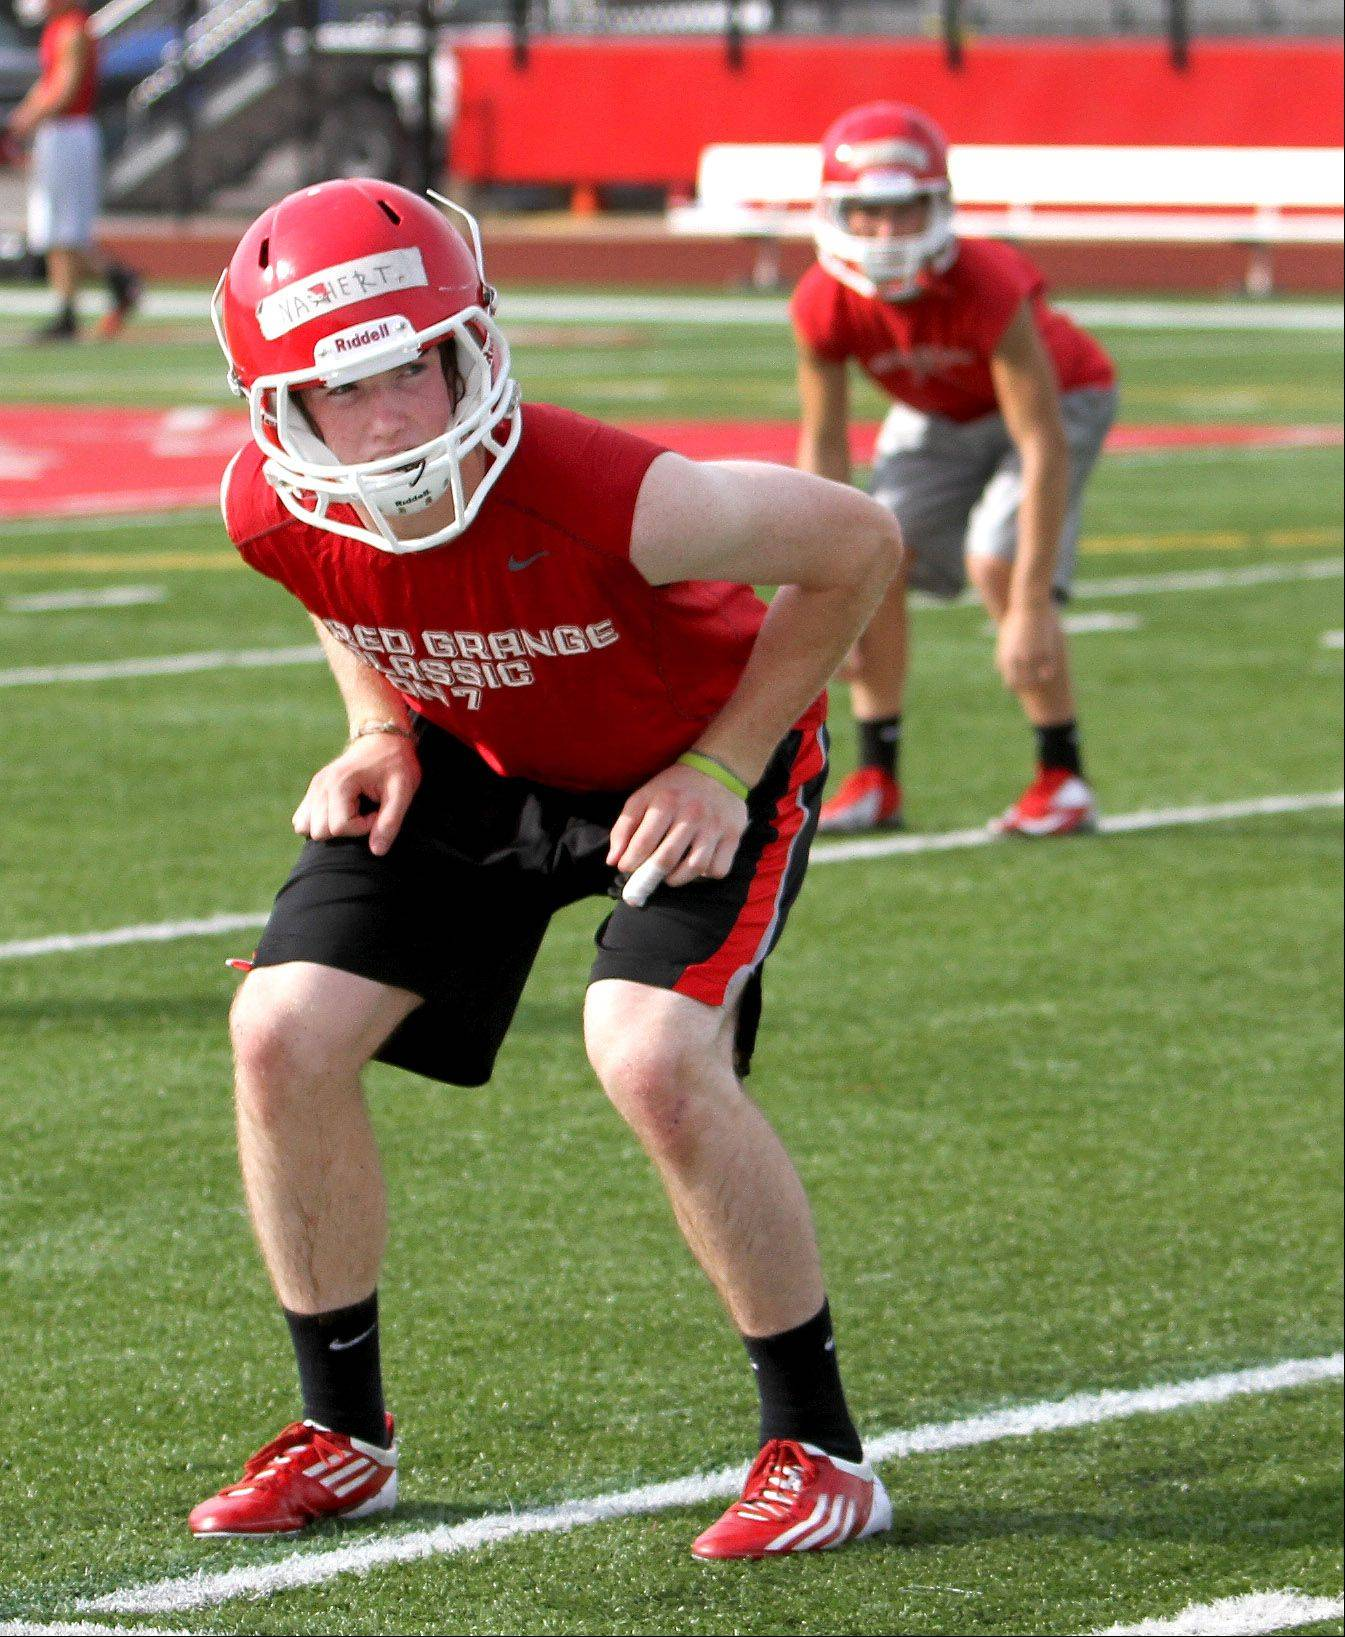 Jimmy Nashert goes through drills with his team at Naperville Central High School on Wednesday.